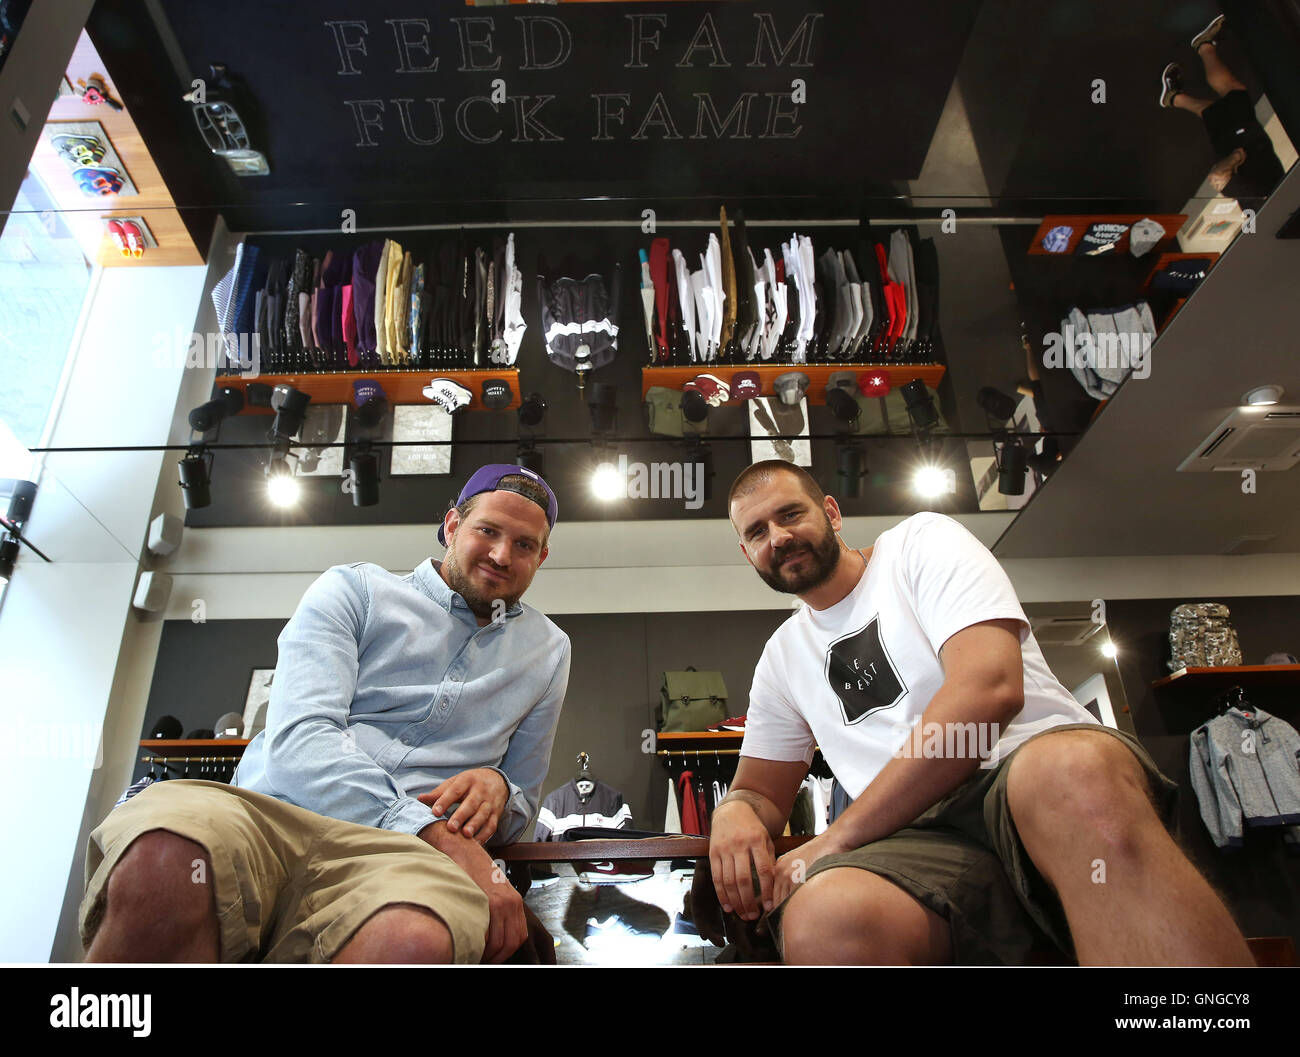 christian boszczyk and dusan cvetkovic from the streetwear label beastin in